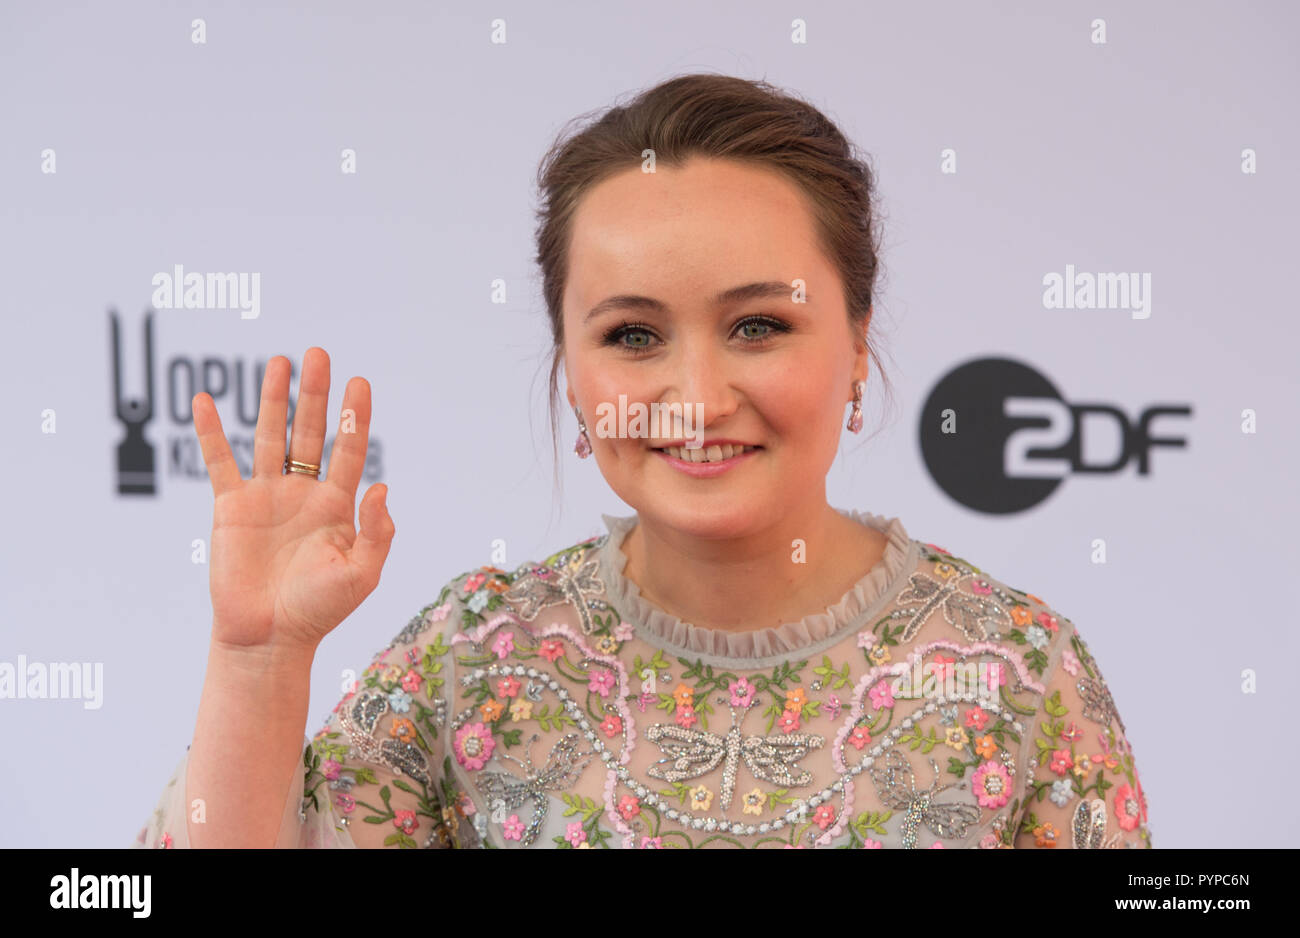 Julia LEZHNEVA (solo recording/singing of the year, opera) Award ceremony of the Opus Klassik 2018 by the Verein zur Förderung der Klassischen Musik eV in the Konzerthaus Berlin on 14.10.2018. | Usage worldwide - Stock Image